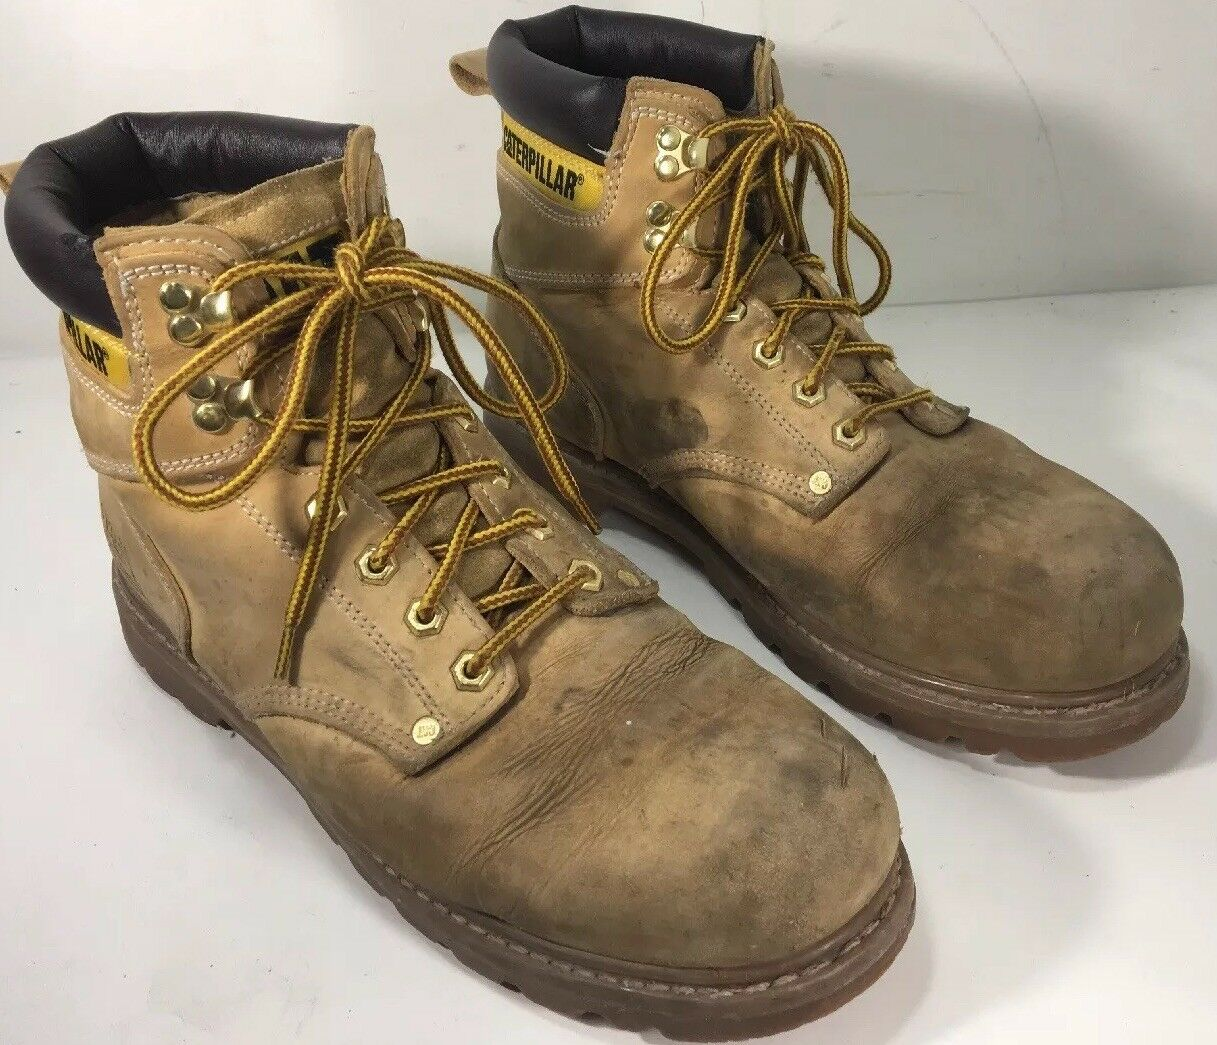 Men's CATepillar  P70042  6 Inch Soft   toe Boots color Wheat   Size 11.5 Wide